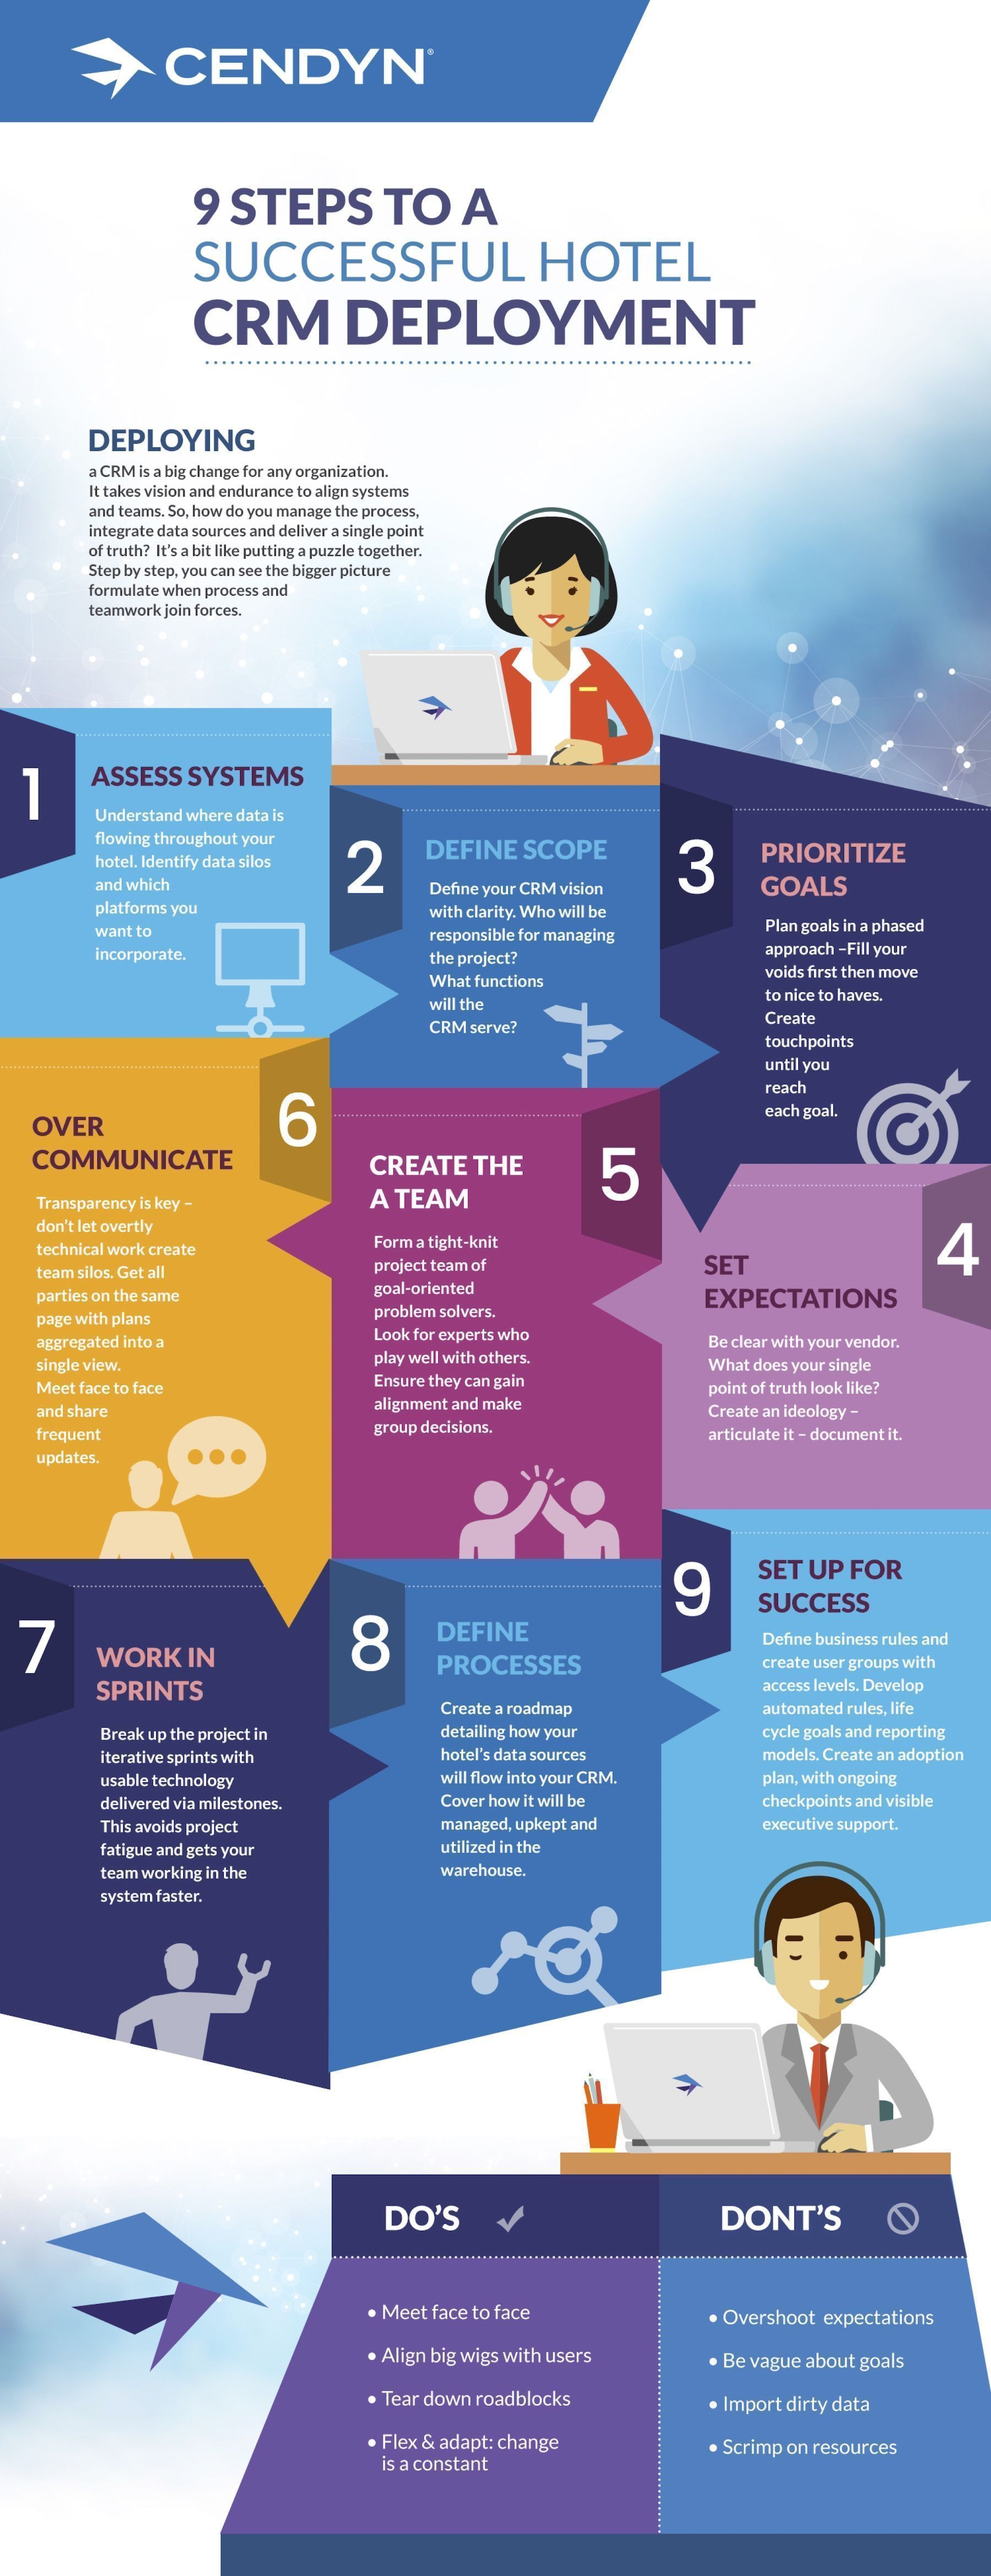 Infographic_Guide-to-Successful-CRM-Implementation_Cendyn.jpg